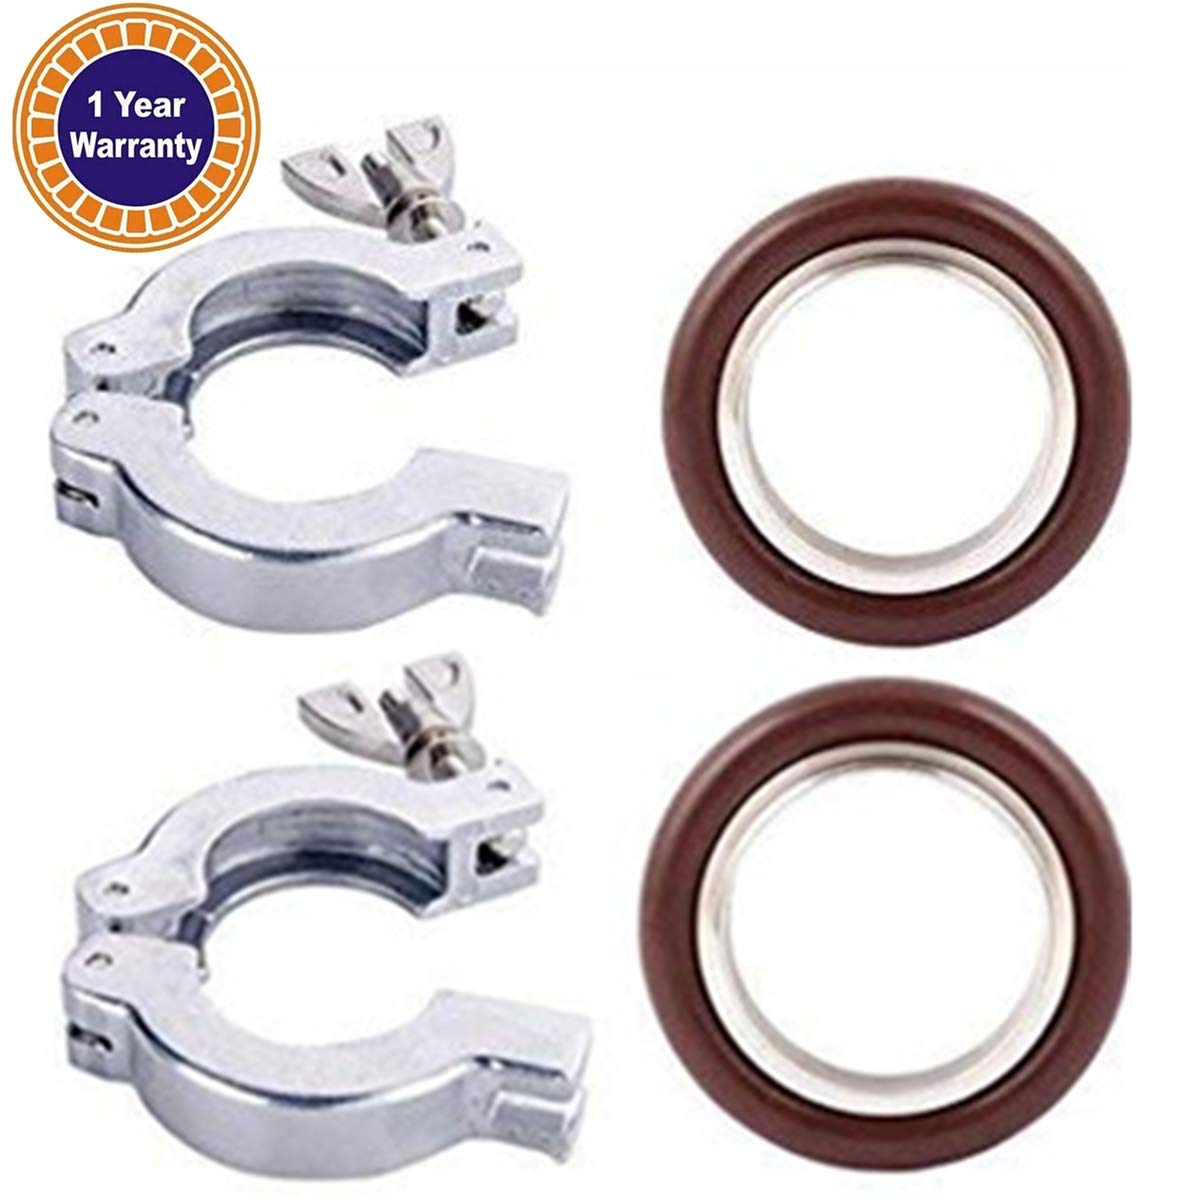 Quick Clamp Vacuum Adapter - 2 Sets KF-25, Flage Size NW-25 Flange Clamp With Wing Nut Closure + Centering Ring With FKM O-ring, Stainless Steel (304) All by FACTRYOLET